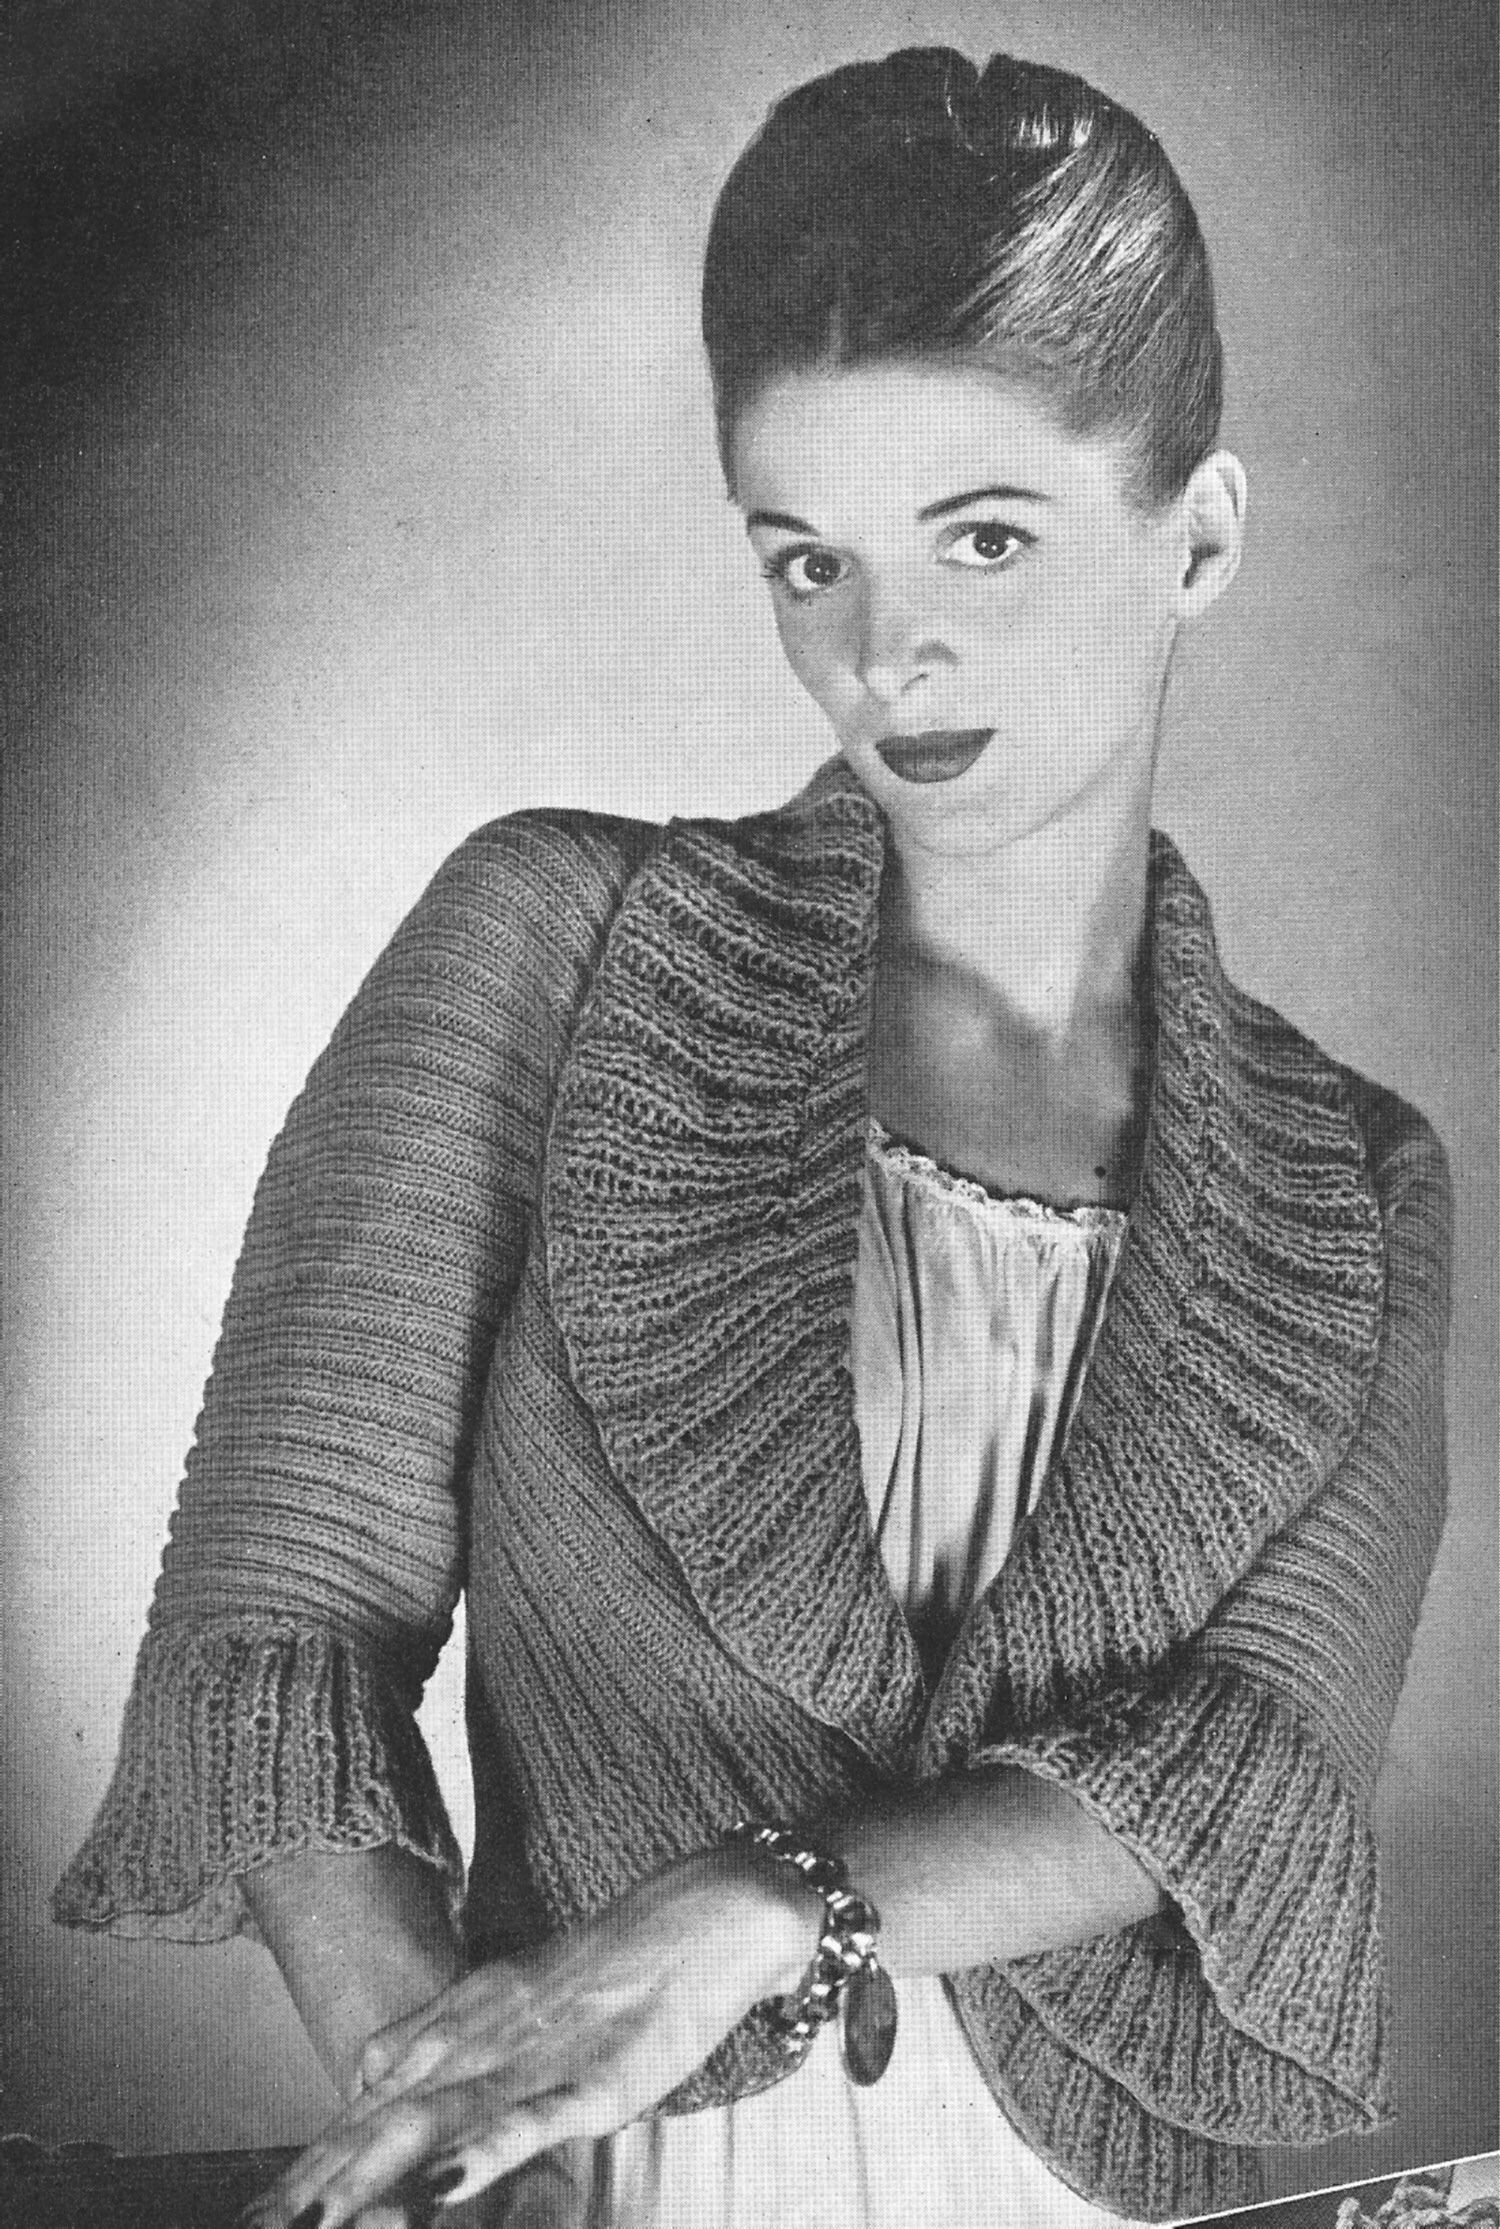 Vintage antique bed jacket sweater knitting pattern hmmm kinda vintage knitting pattern to make knitted bed jacket sweater shawl collar shrug not a finished item this is a pattern andor instructions to make the bankloansurffo Choice Image